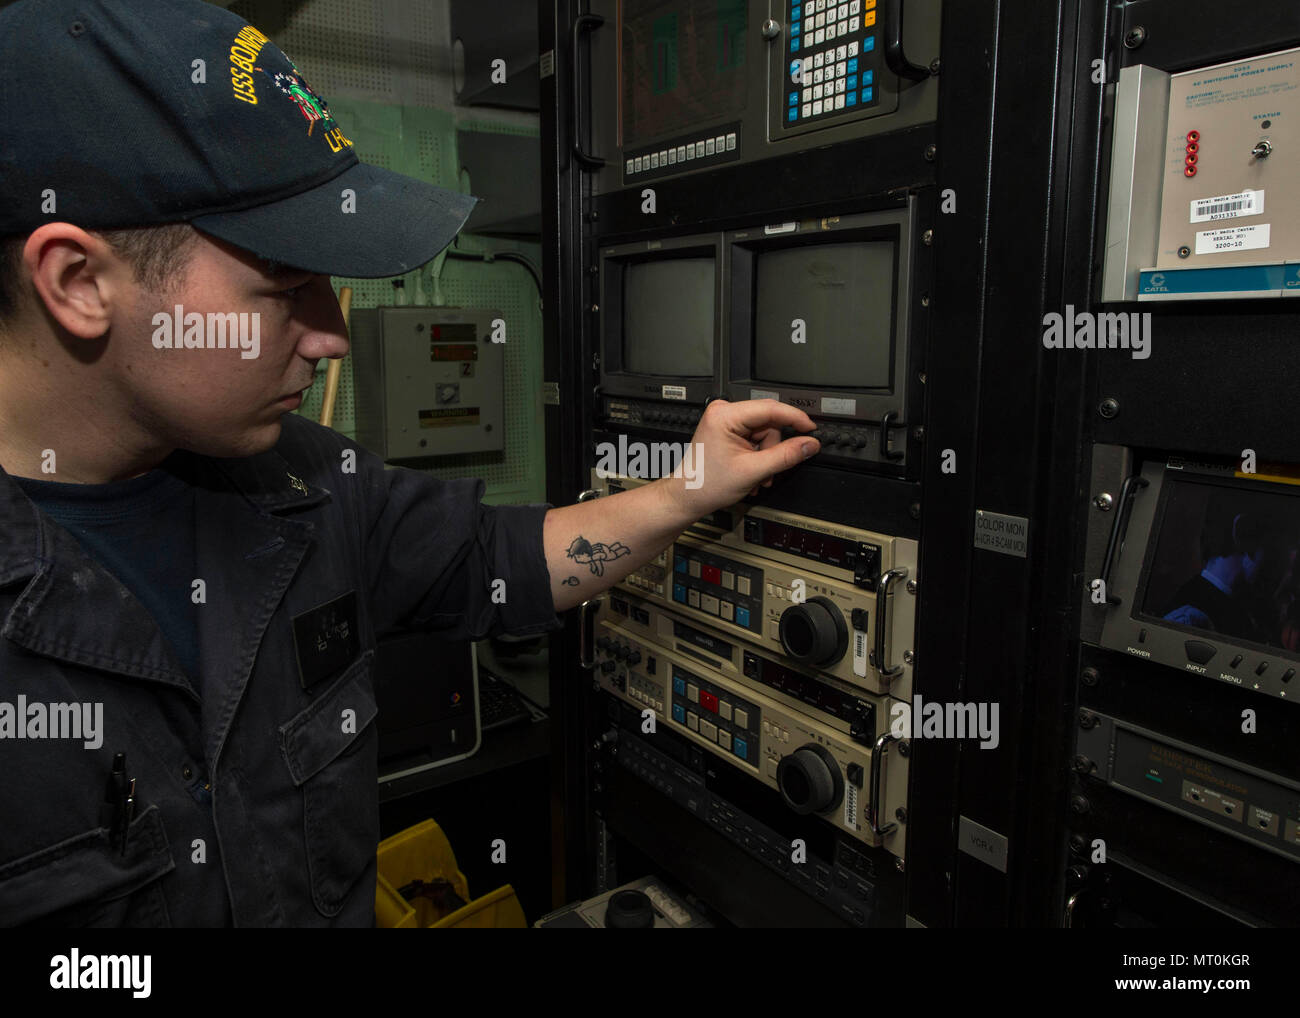 170715-N-RD713-034 CORAL SEA (July 15, 2017) Interior Communications Electrician 3rd Class Jacob Flynn, from Cincinnati, tests a television monitor in the Shipboard Information Training and Entertainment Television (SITE TV) center aboard the amphibious assault ship USS Bonhomme Richard (LHD 6). Bonhomme Richard, part of a combined U.S.-Australia-New Zealand expeditionary strike group, is undergoing a series of scenarios that will increase naval proficiencies in operating against blue-water adversarial threats and in its primary mission of launching Marine forces ashore in the littorals. Talis - Stock Image